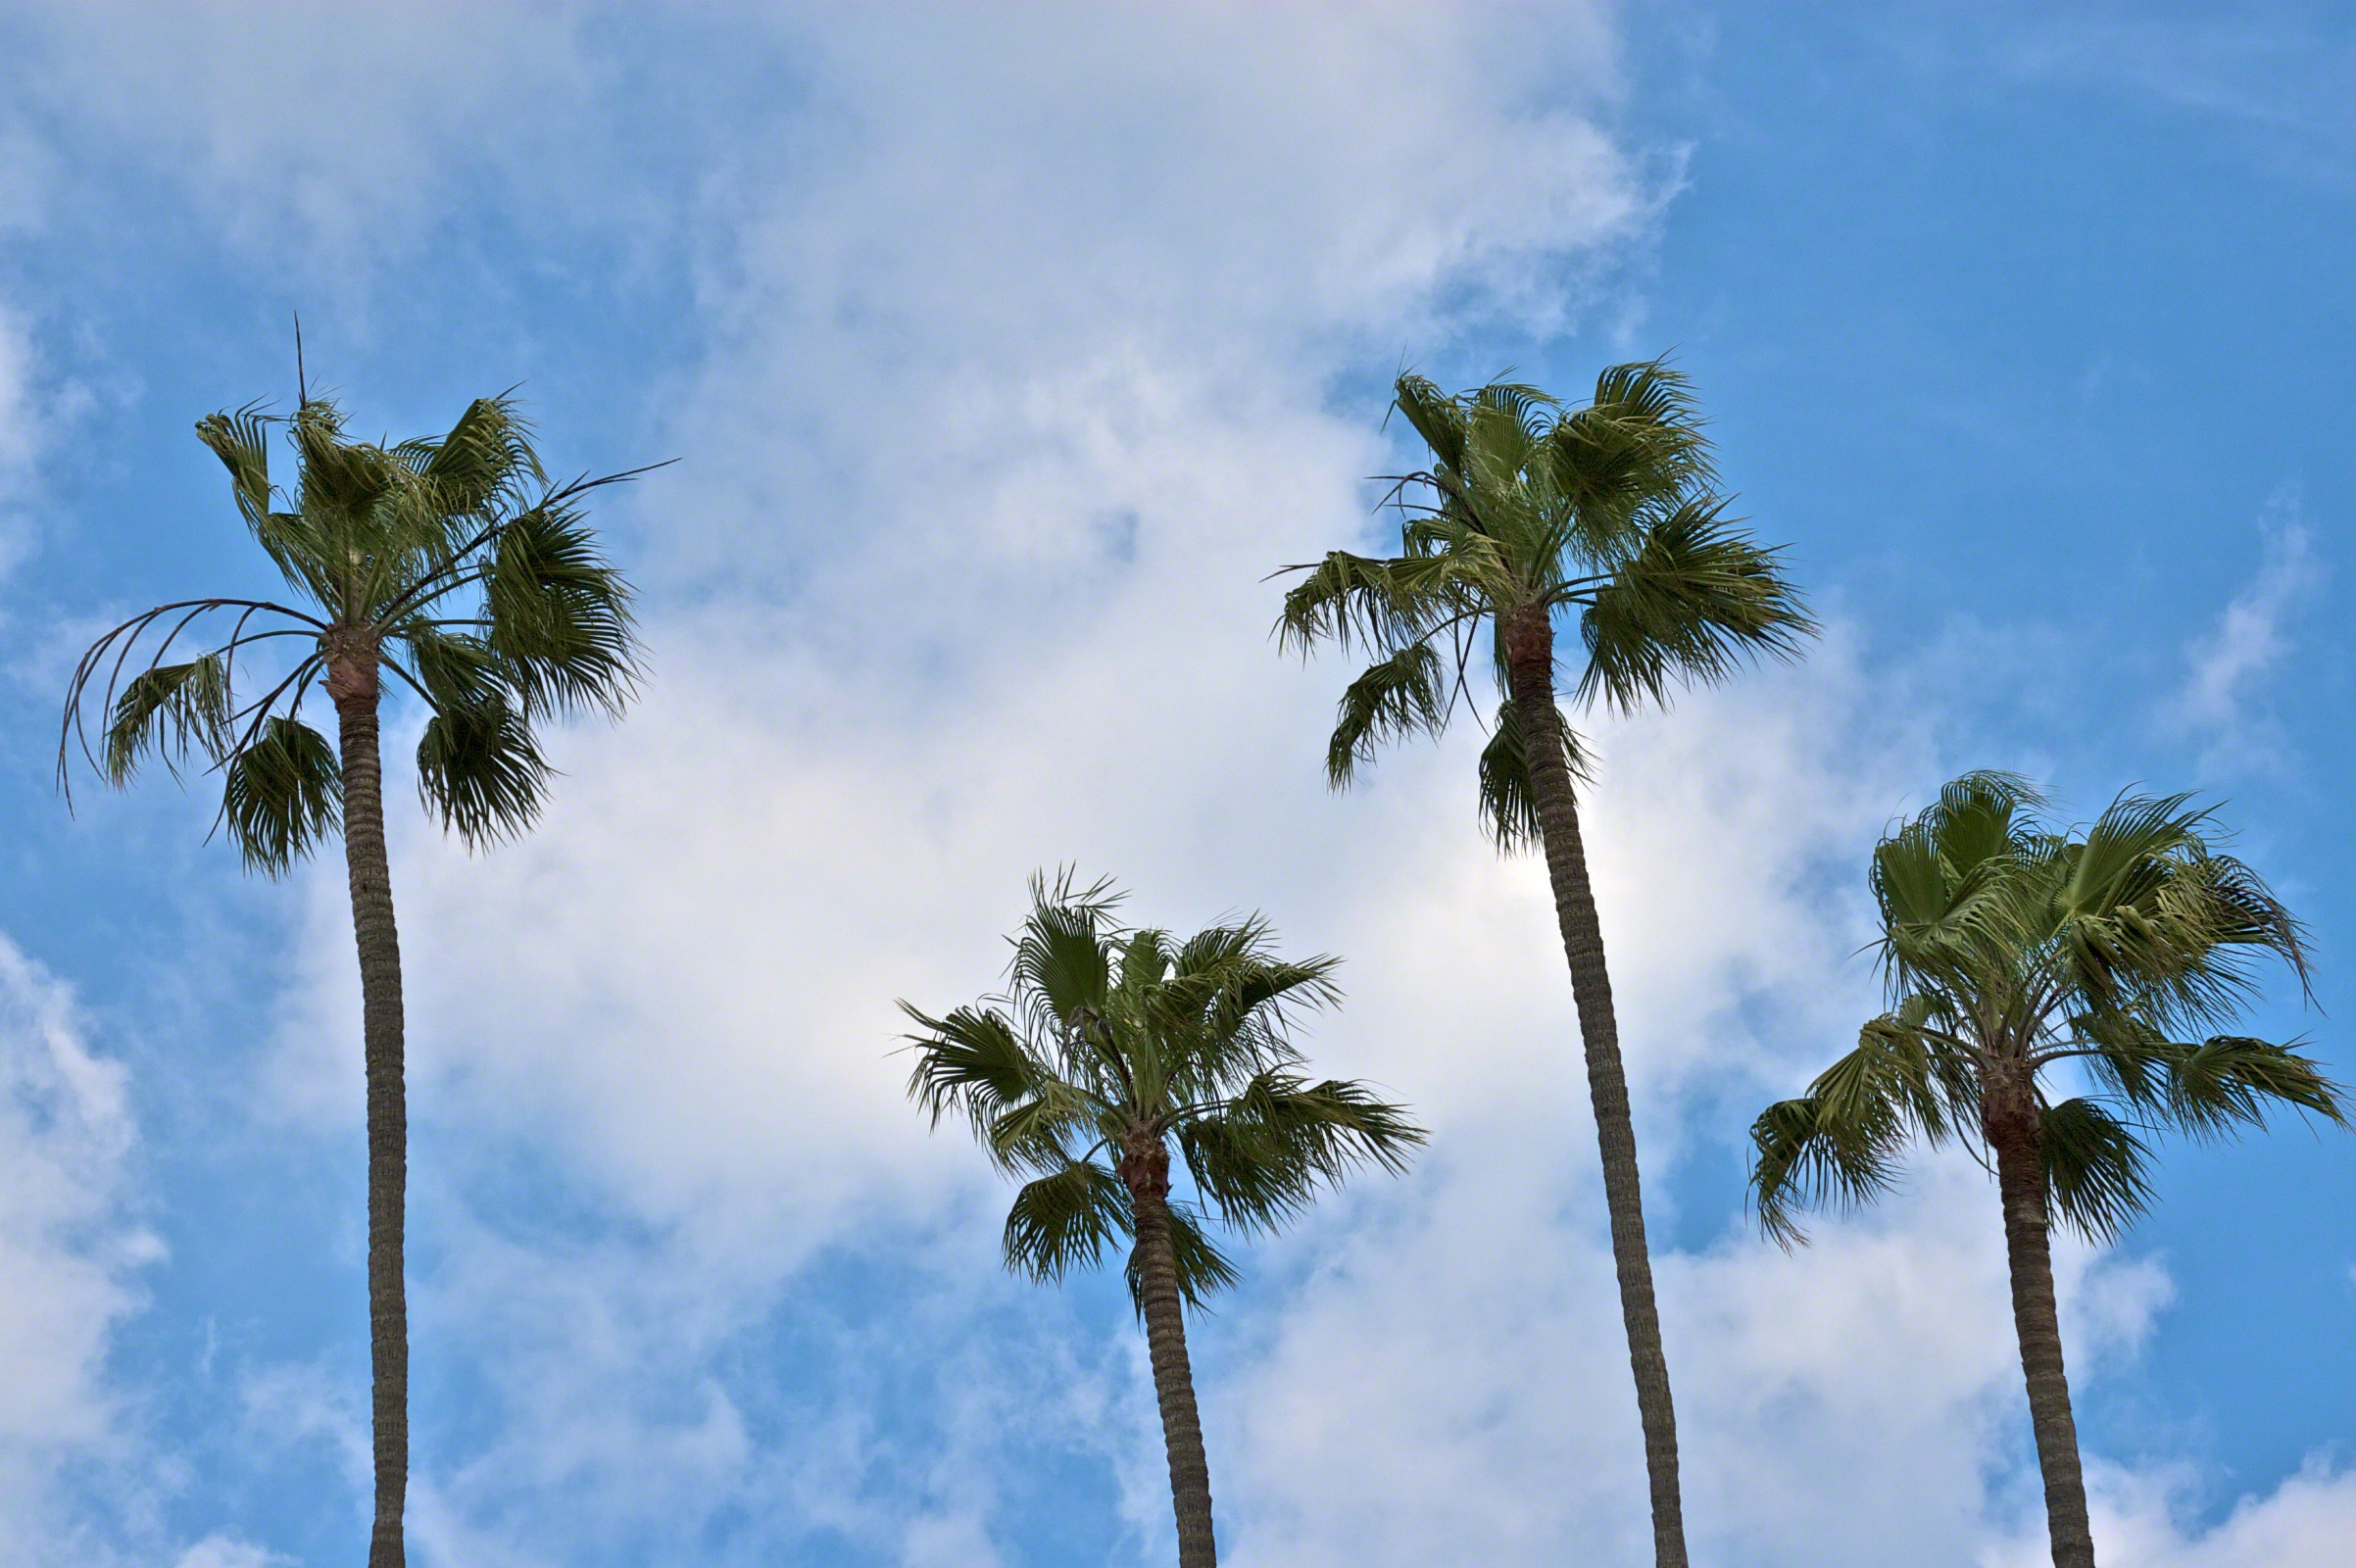 california palm trees wallpaper wallpapersafari